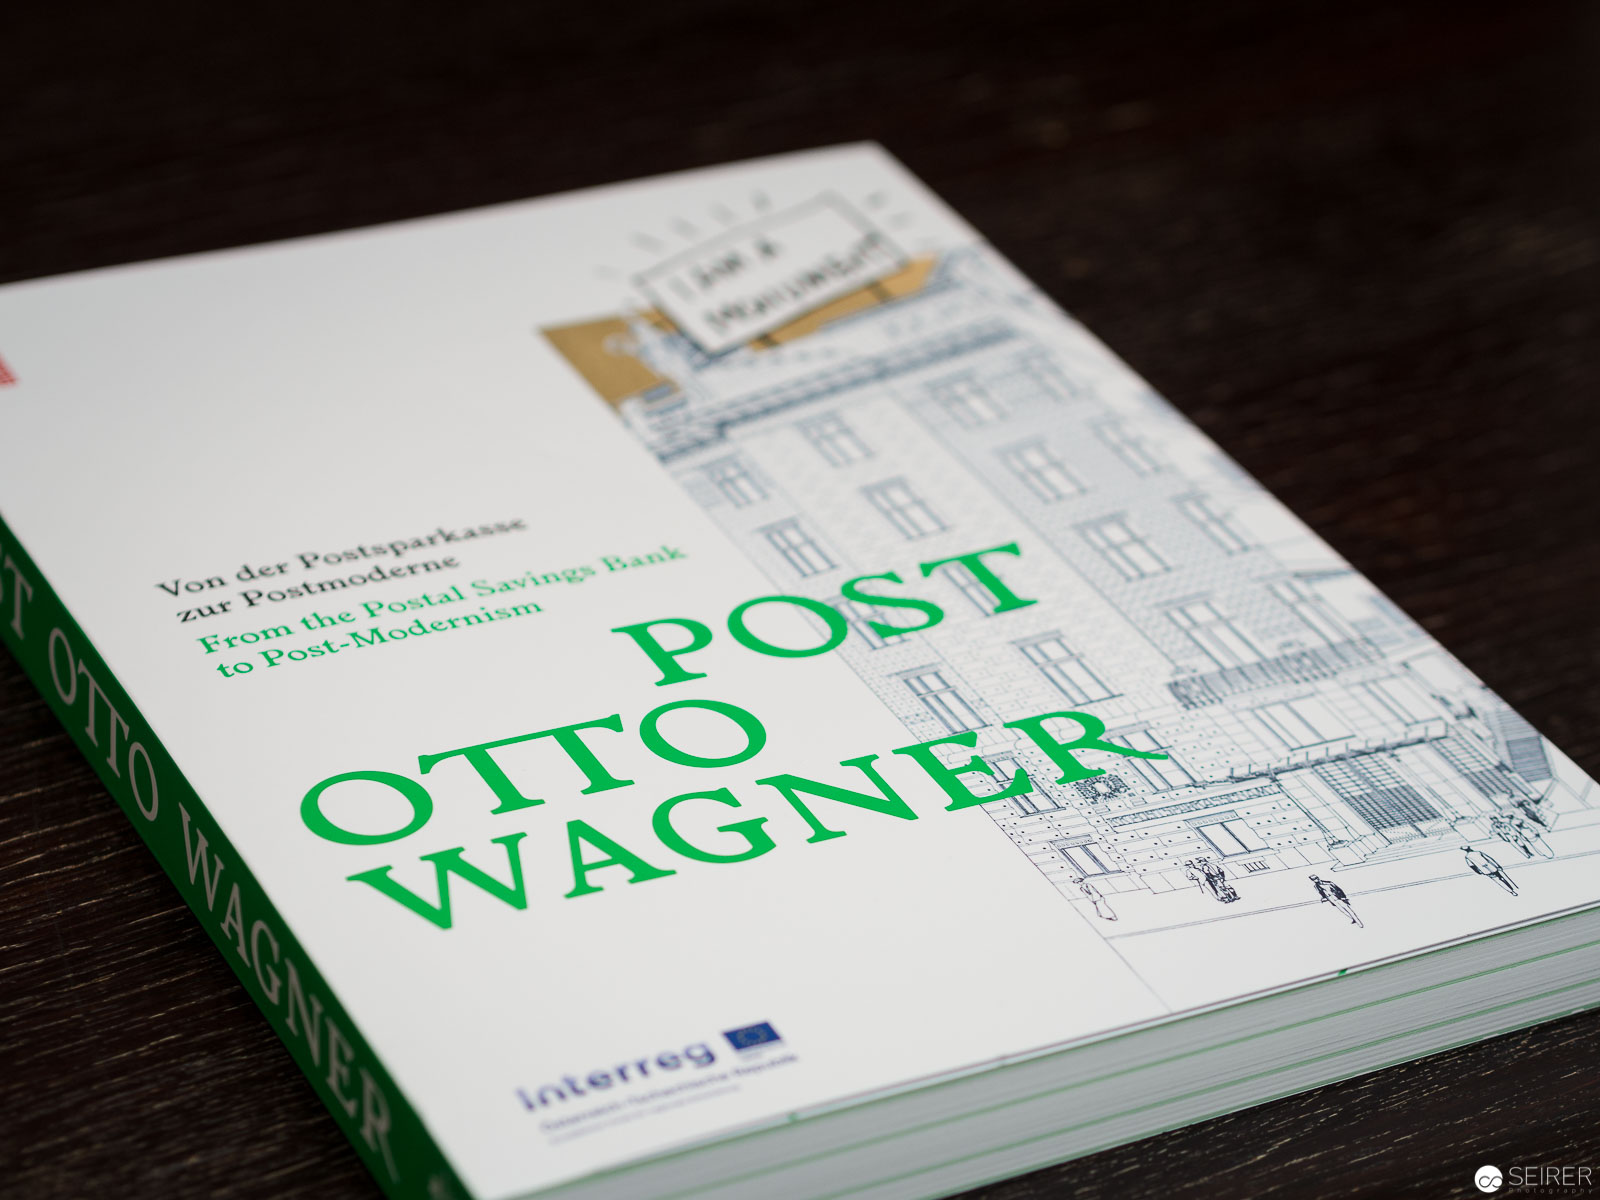 20180911 101827 Post Otto Wagner 9110012